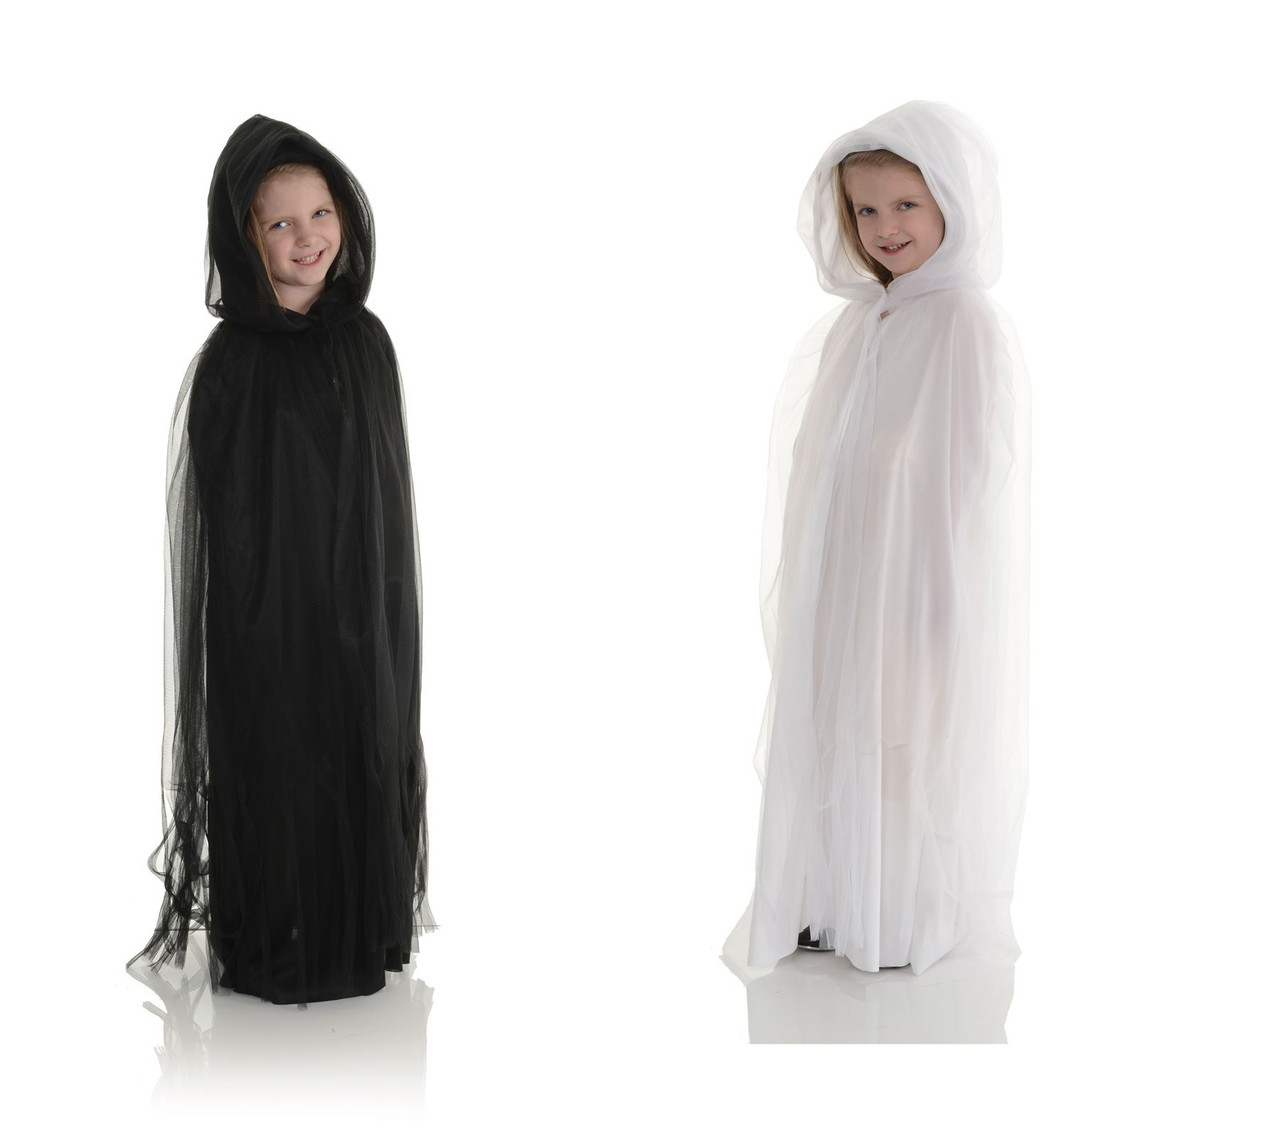 Halloween Costumes For Kids Girls Zombie.Tulle Cape Long Witch Zombie Dark Princess Queen Kids Girls Halloween Costume Accessory